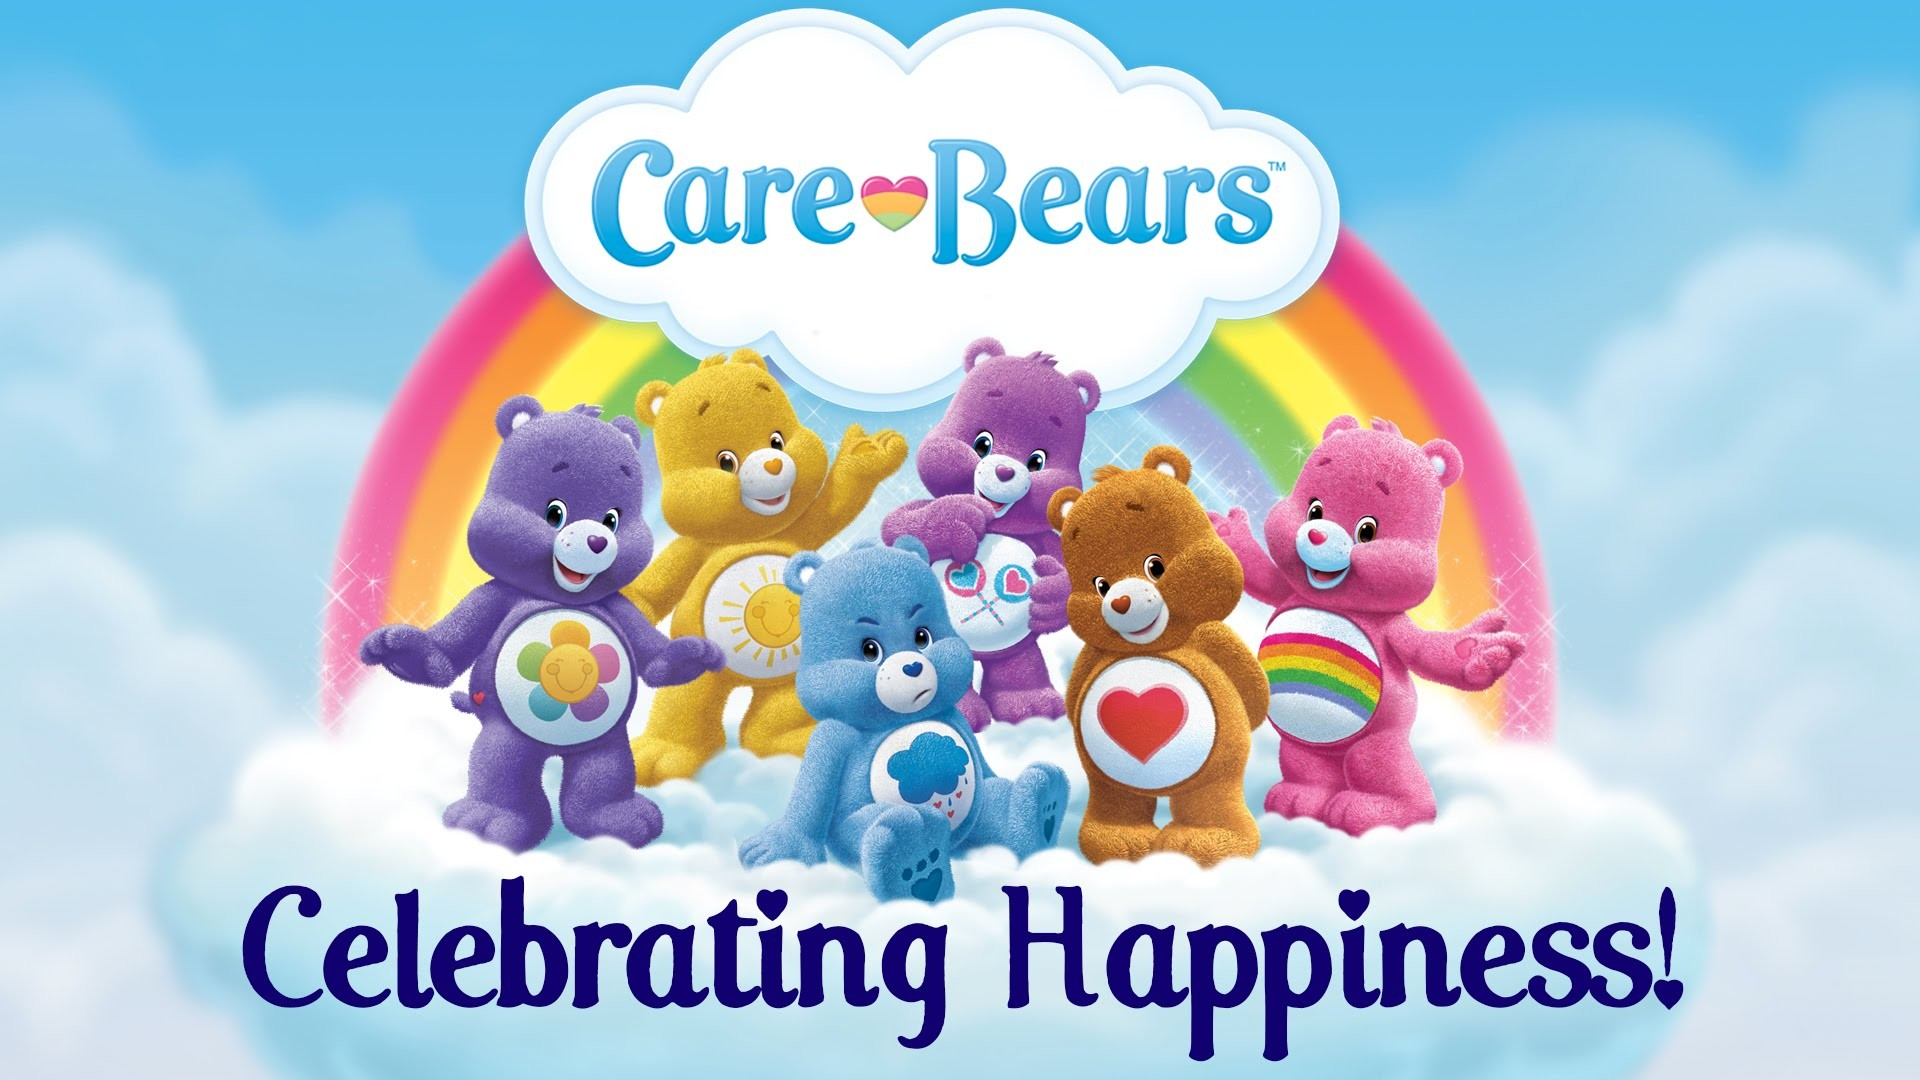 1920x1080 Celebrating Happiness with the Care Bears! | HAPPIEST MOMENTS COMPILATION -  YouTube